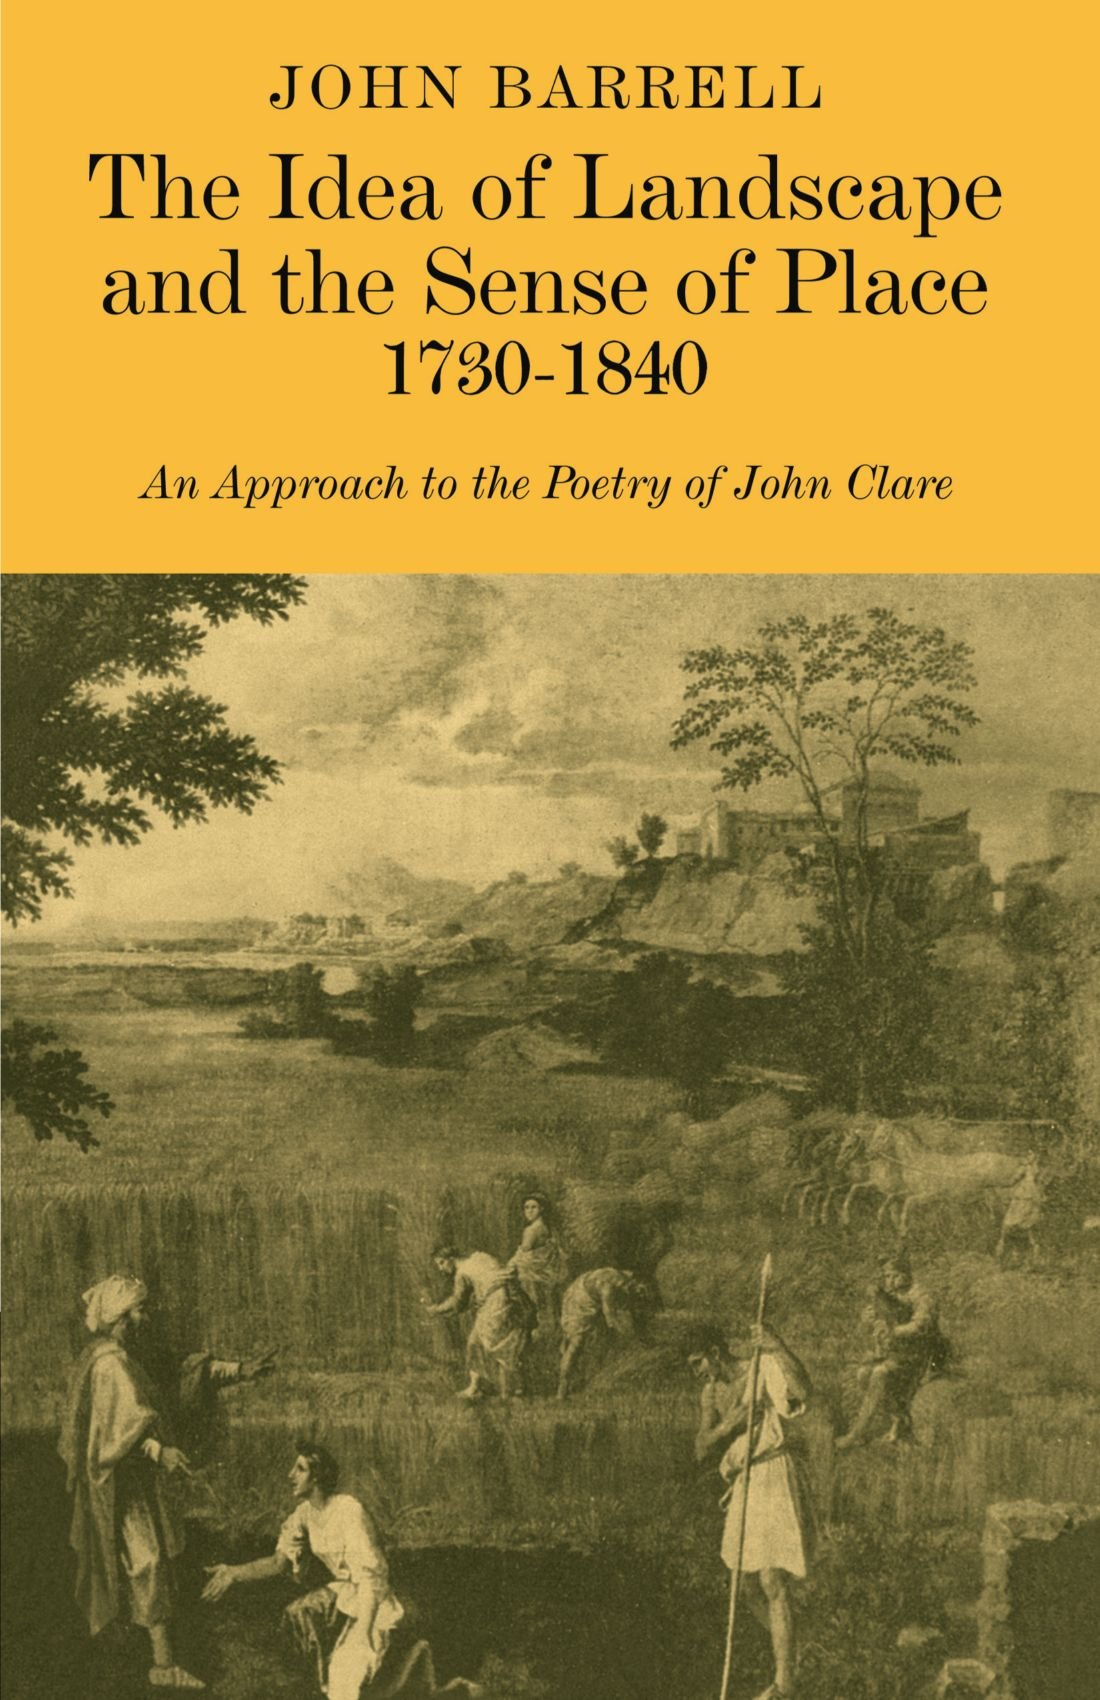 Amazon Com The Idea Of Landscape And The Sense Of Place 1730 1840 An Approach To The Poetry Of John Clare 9780521181327 Barrell John Books